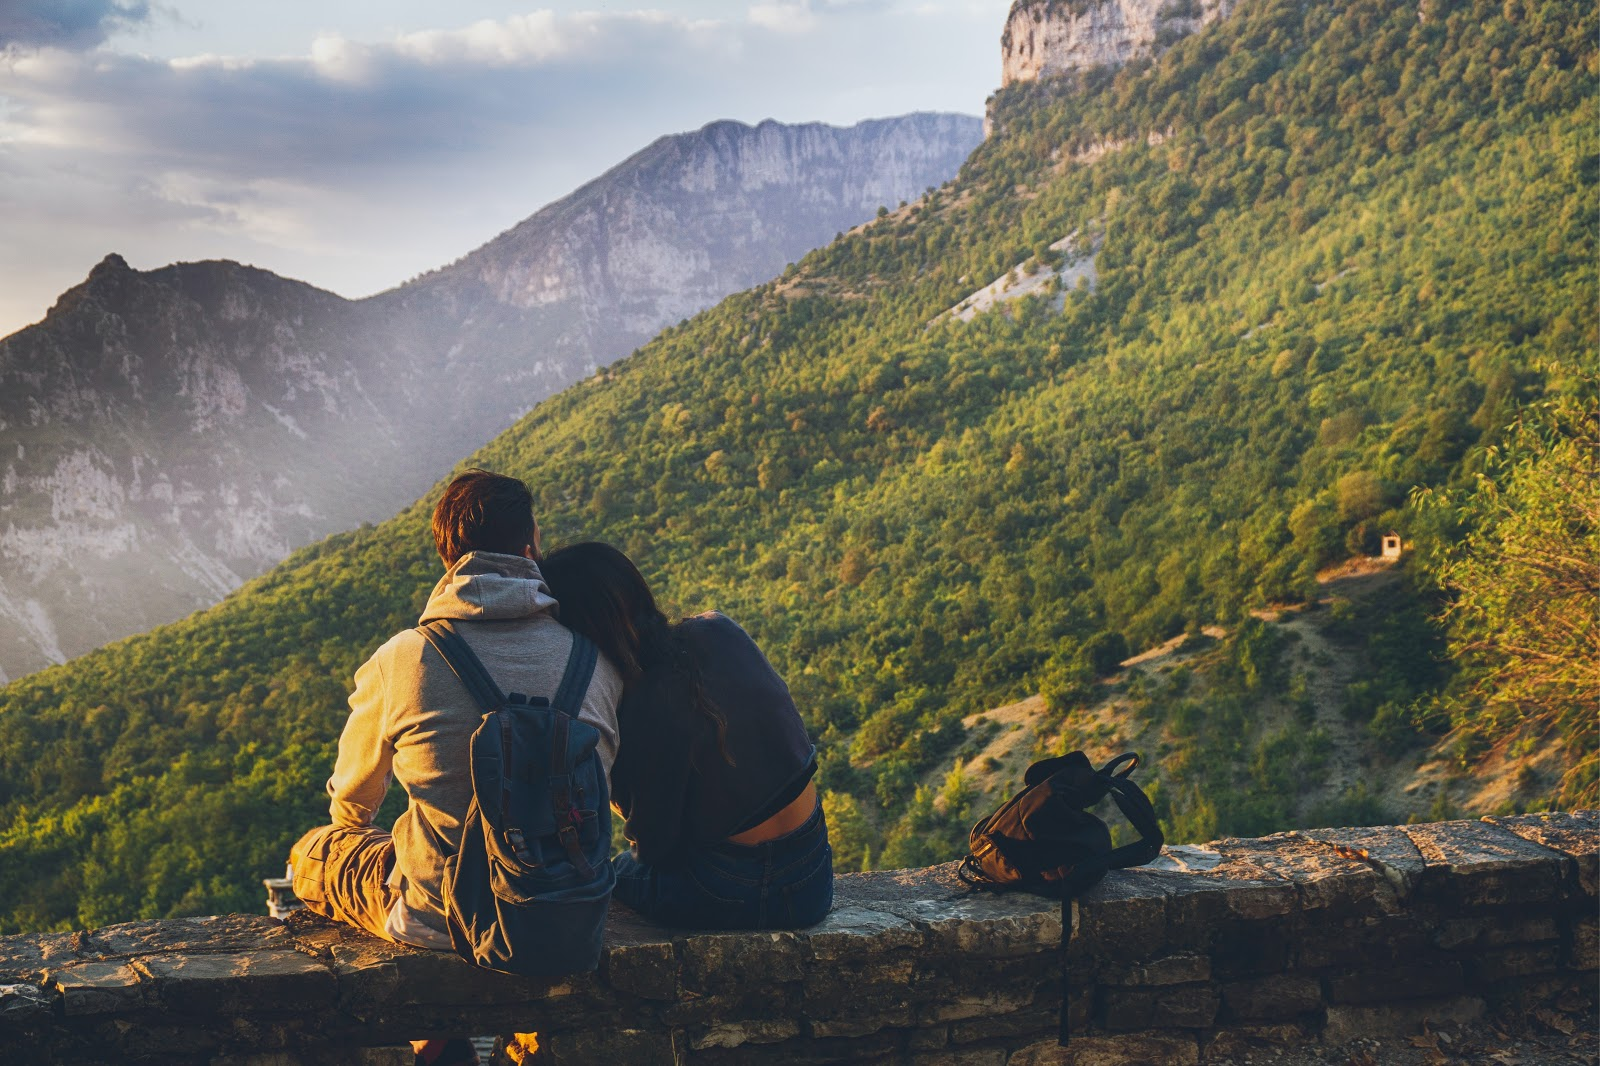 A couple looks out over a scenic view of the mountains, while contemplating their fertility journey.